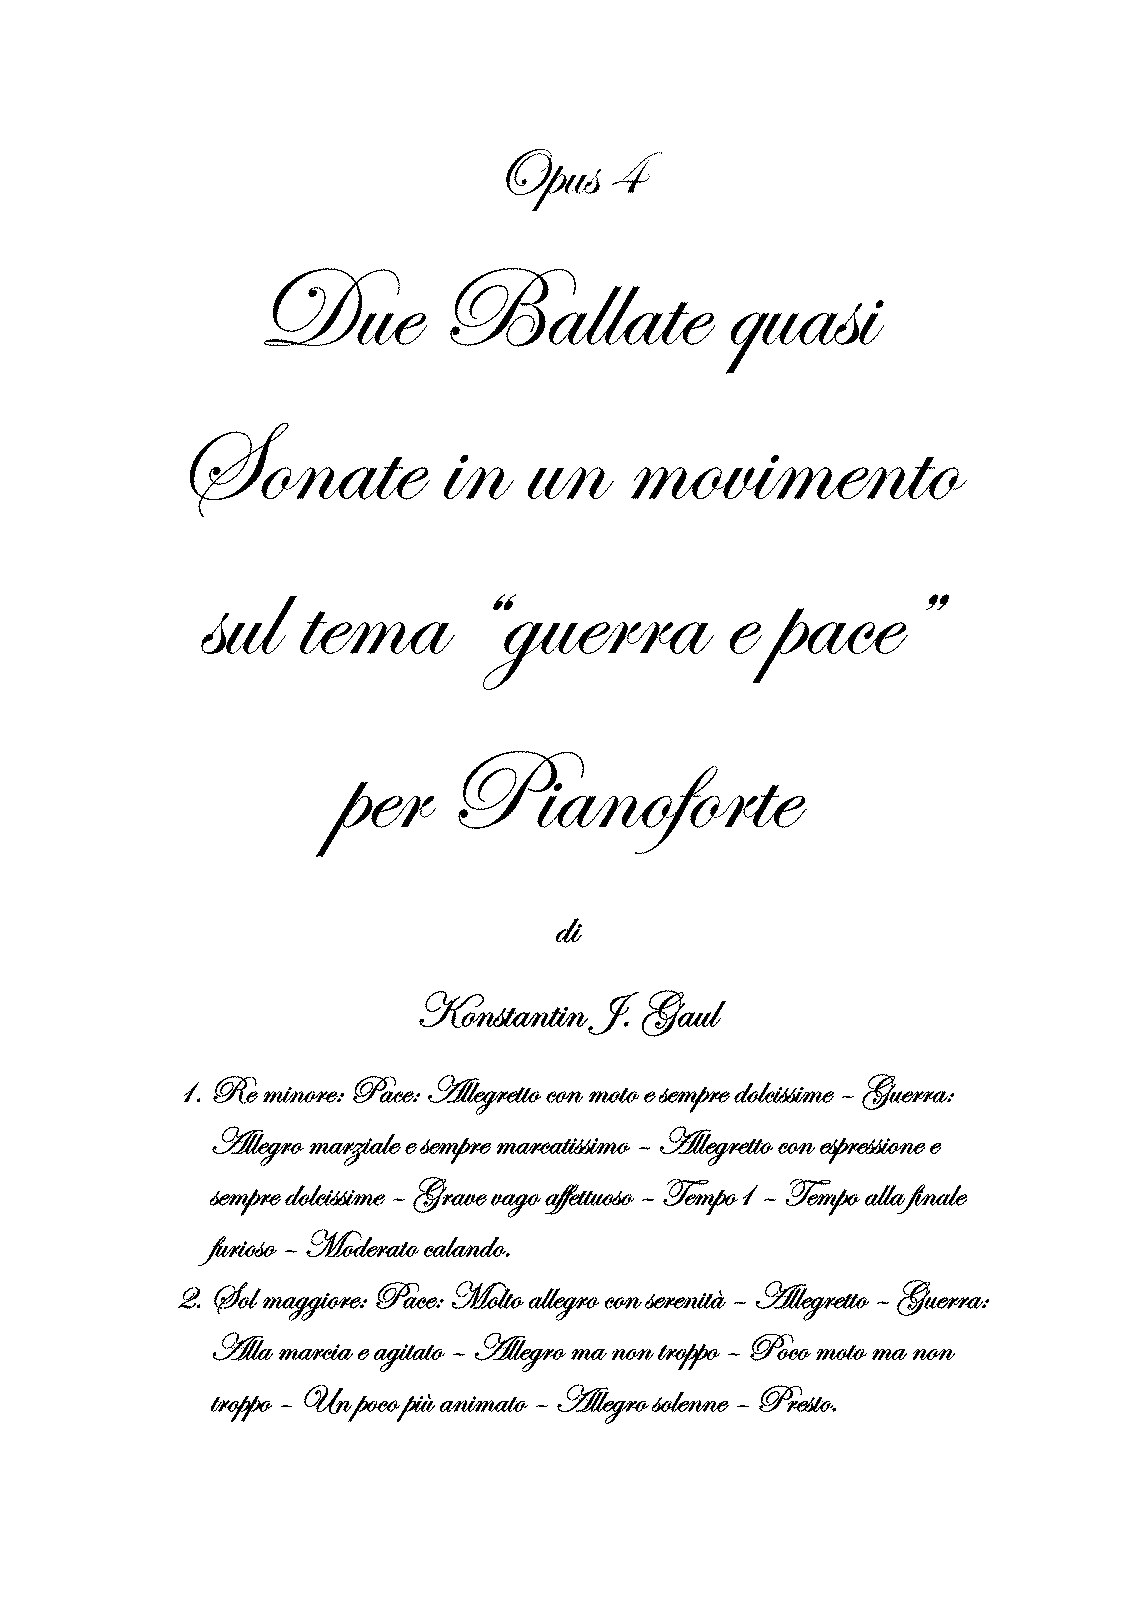 PMLP242972-2 ballades quasi sonatas about war and peace.pdf